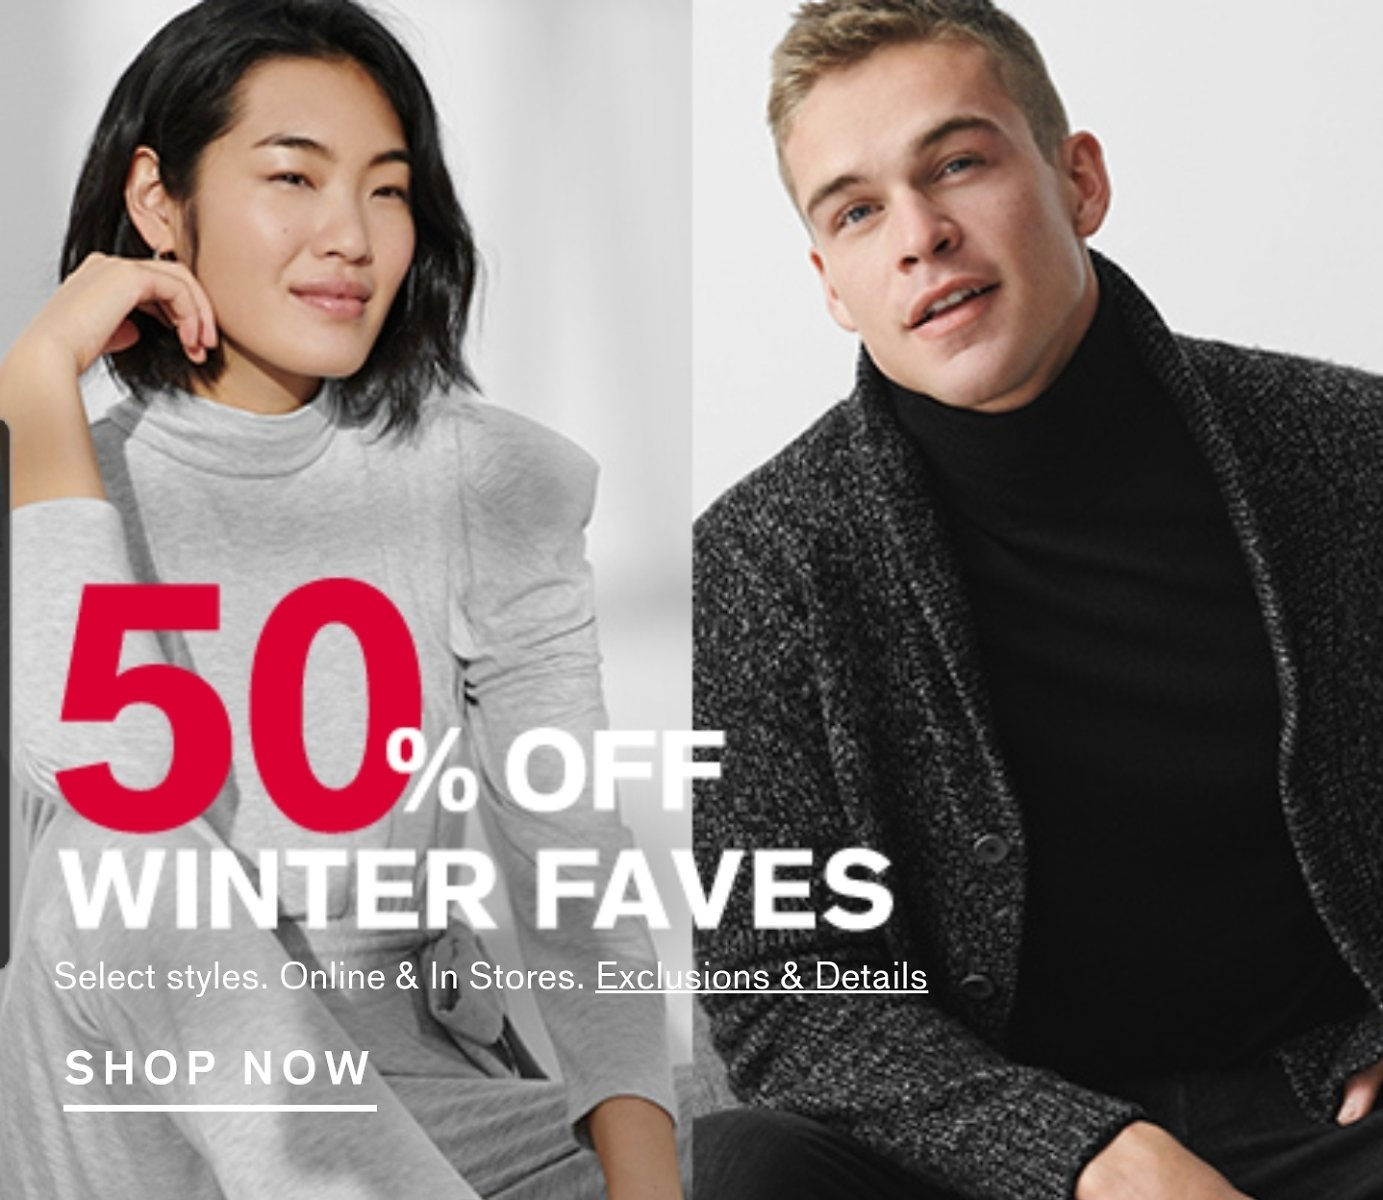 50% Off Select Styles Winter Faves - Express